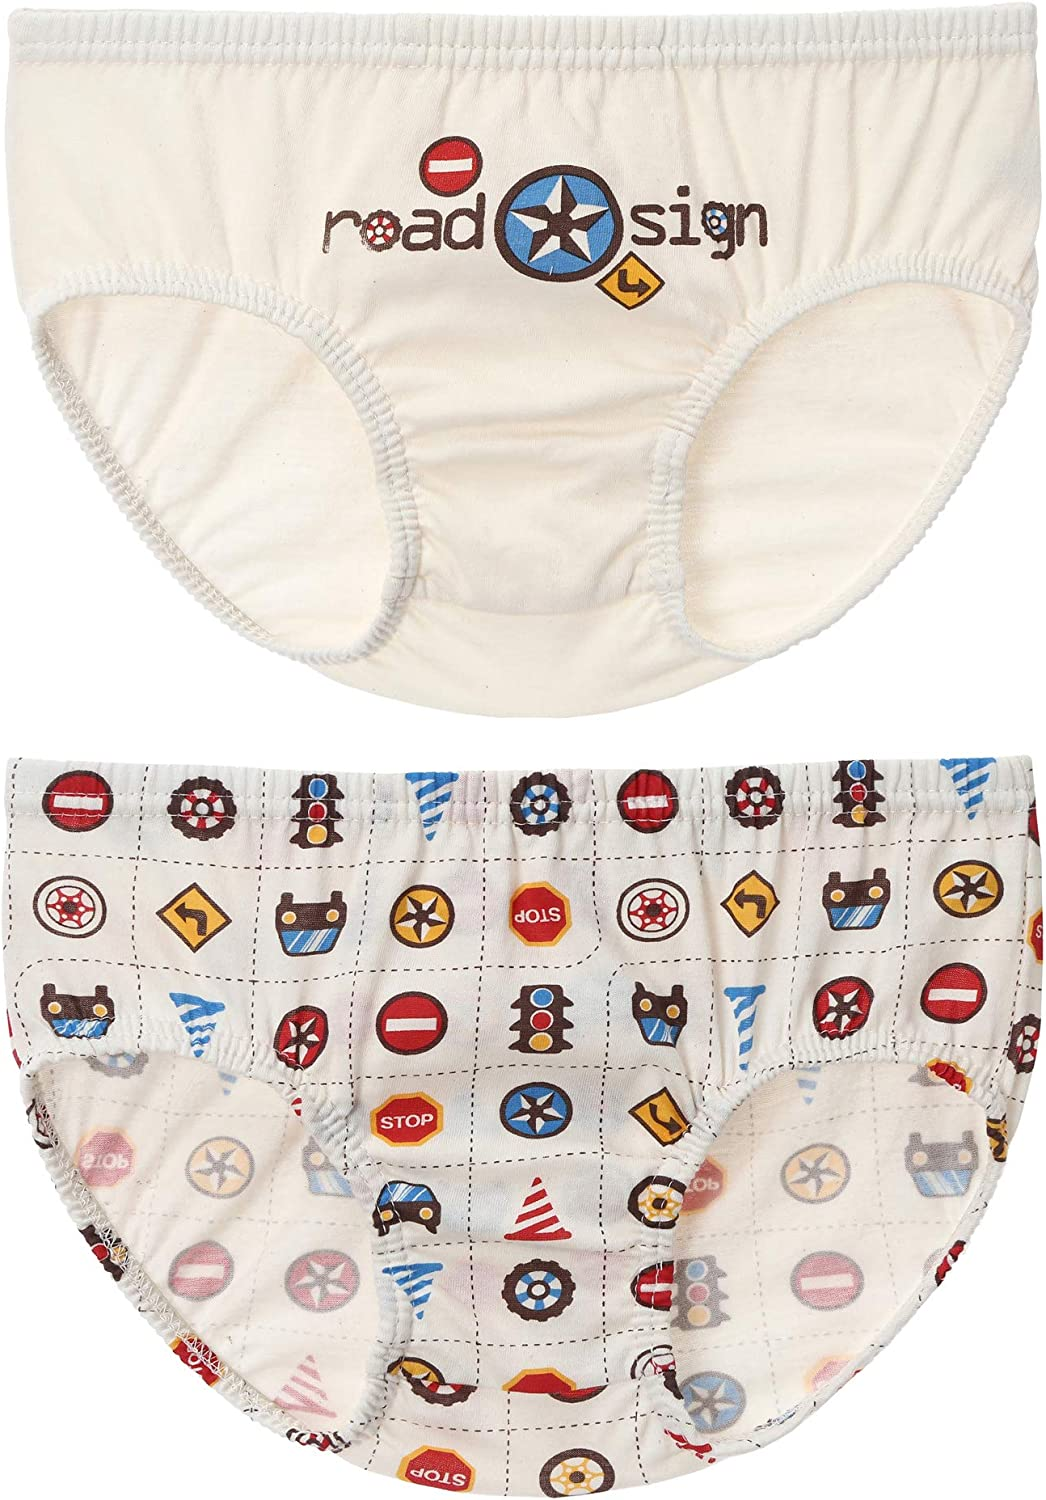 WithOrganic 2 Piece Brief Underwear Set for Boys and Girls - 100% Certified Organic Cotton